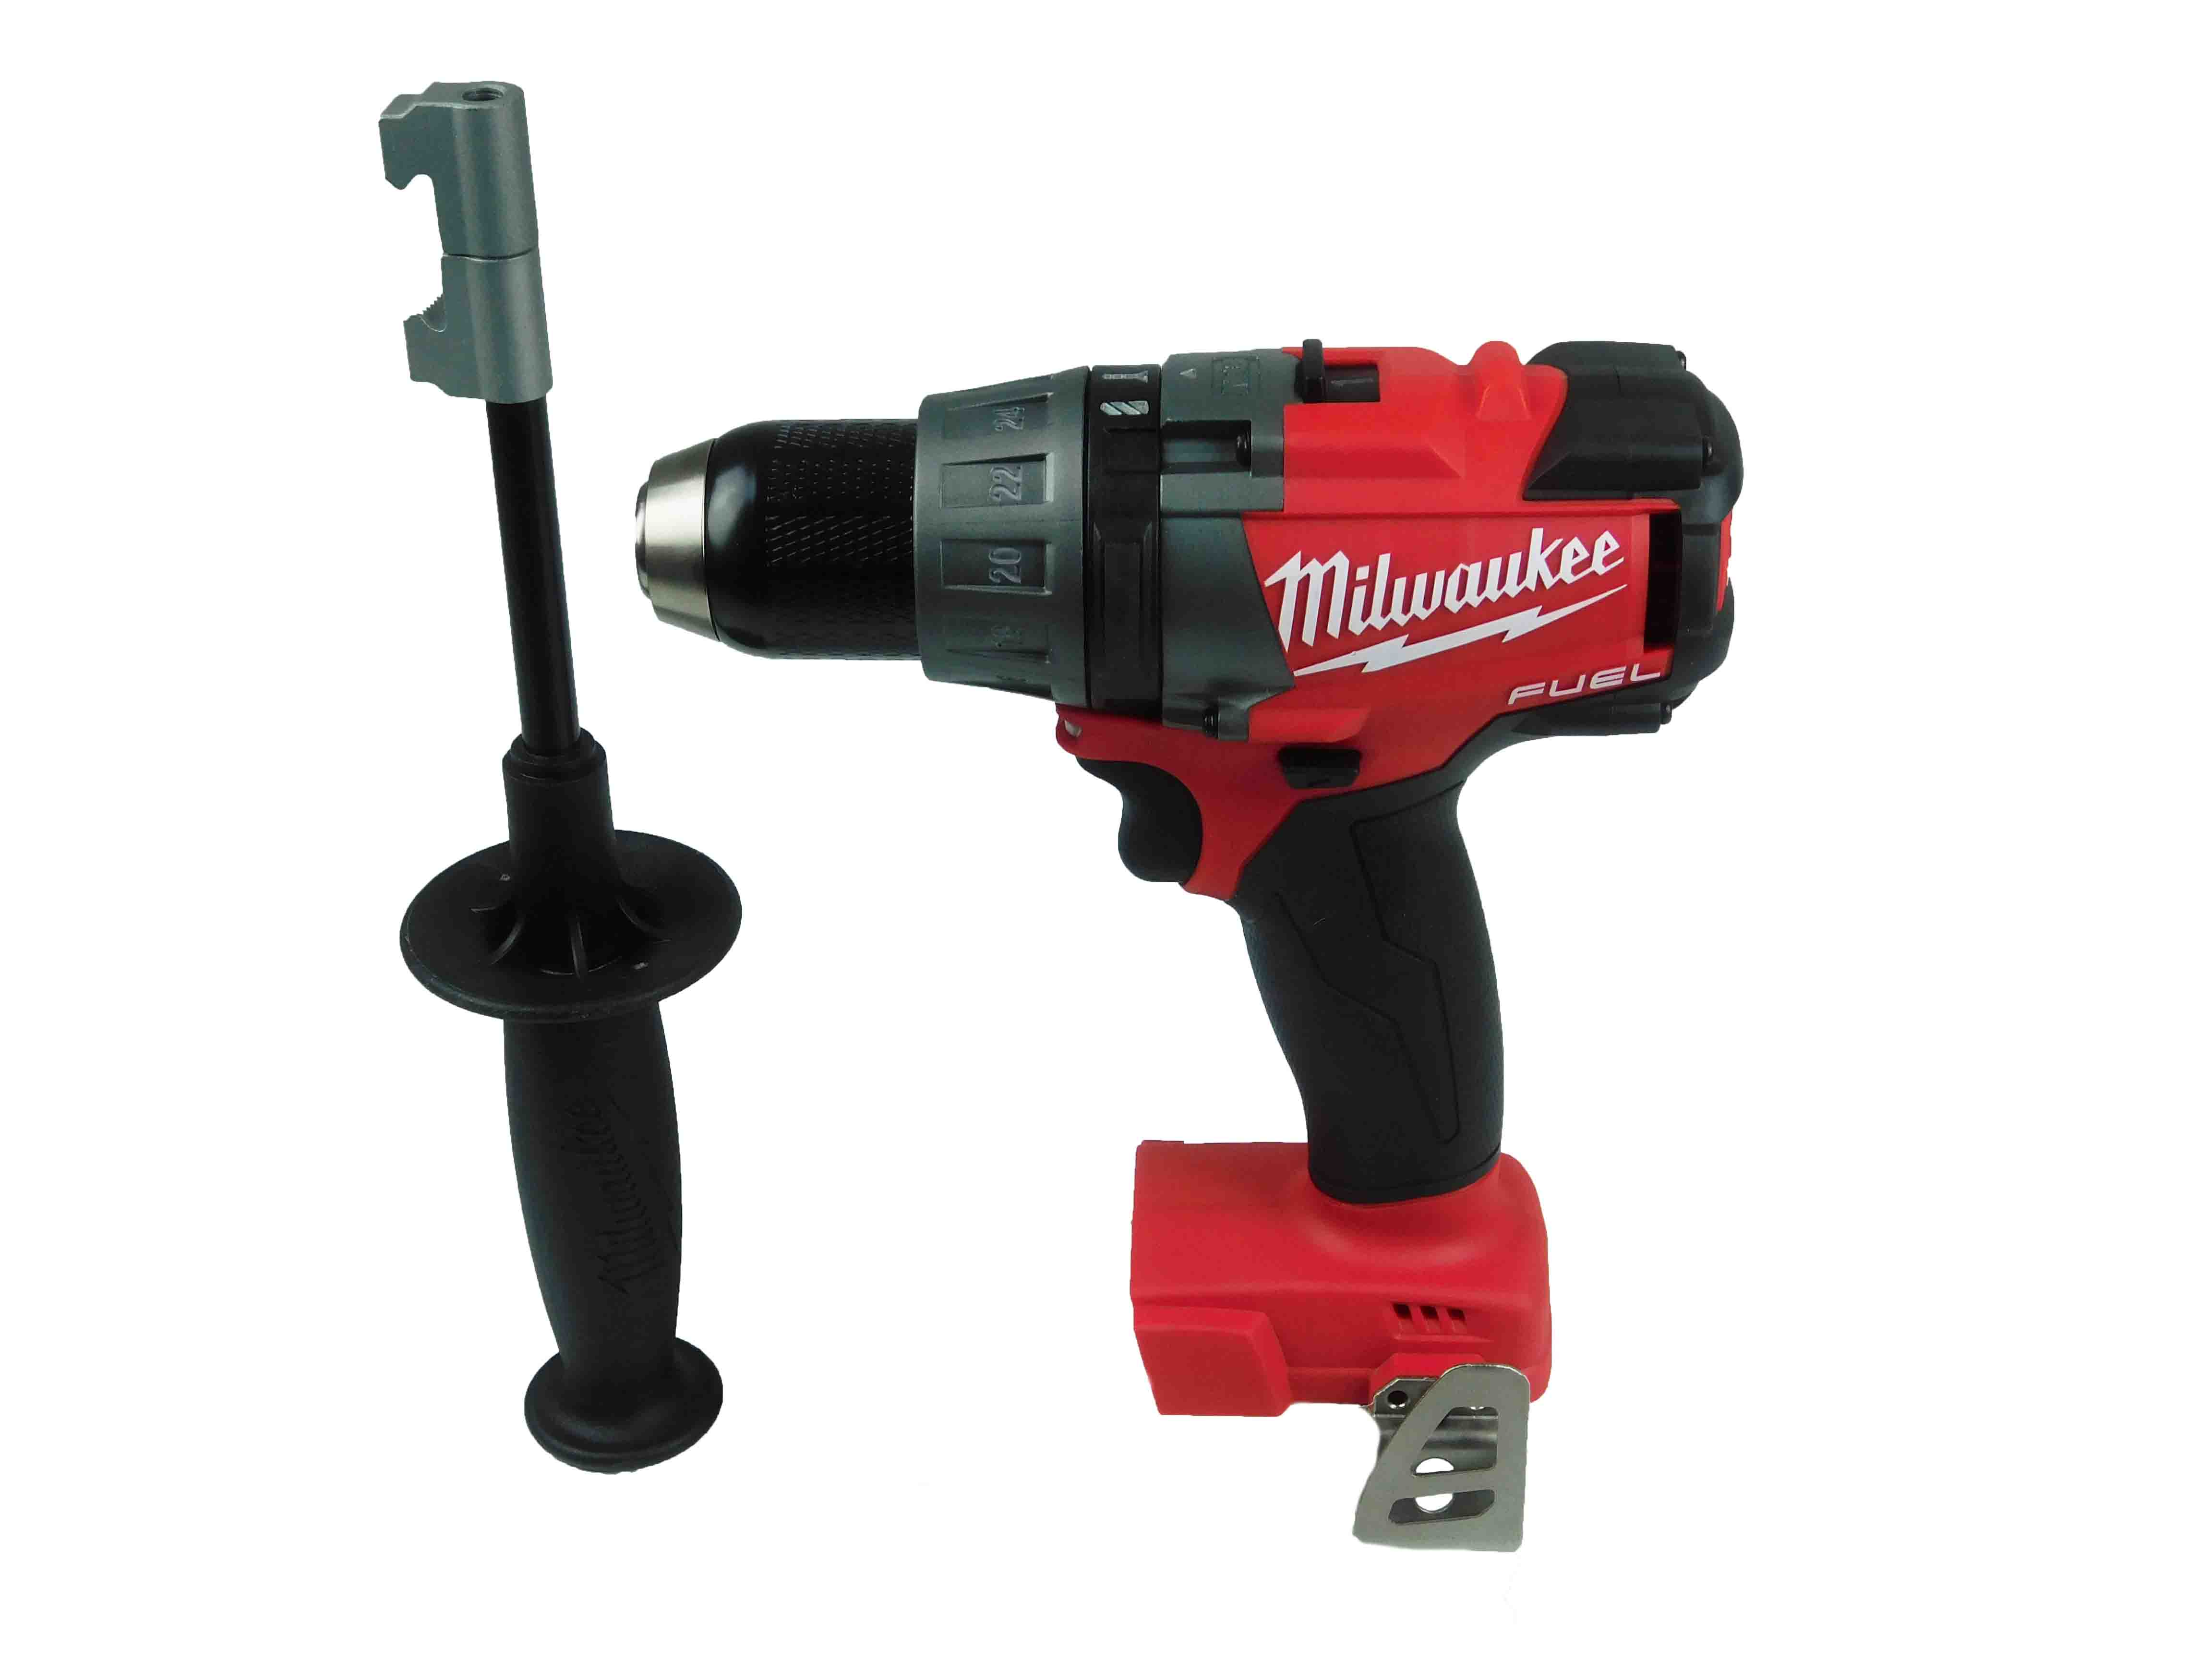 Milwaukee-2703-20-M18-Compact-1-2-Drill-Driver-Bare-Tool-image-8